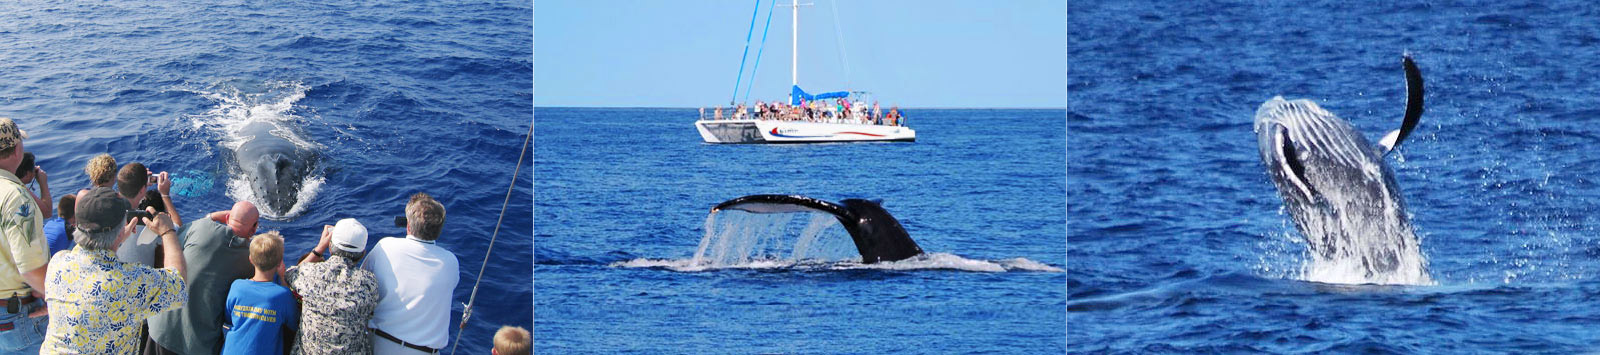 whale-cruise-featured-bg3